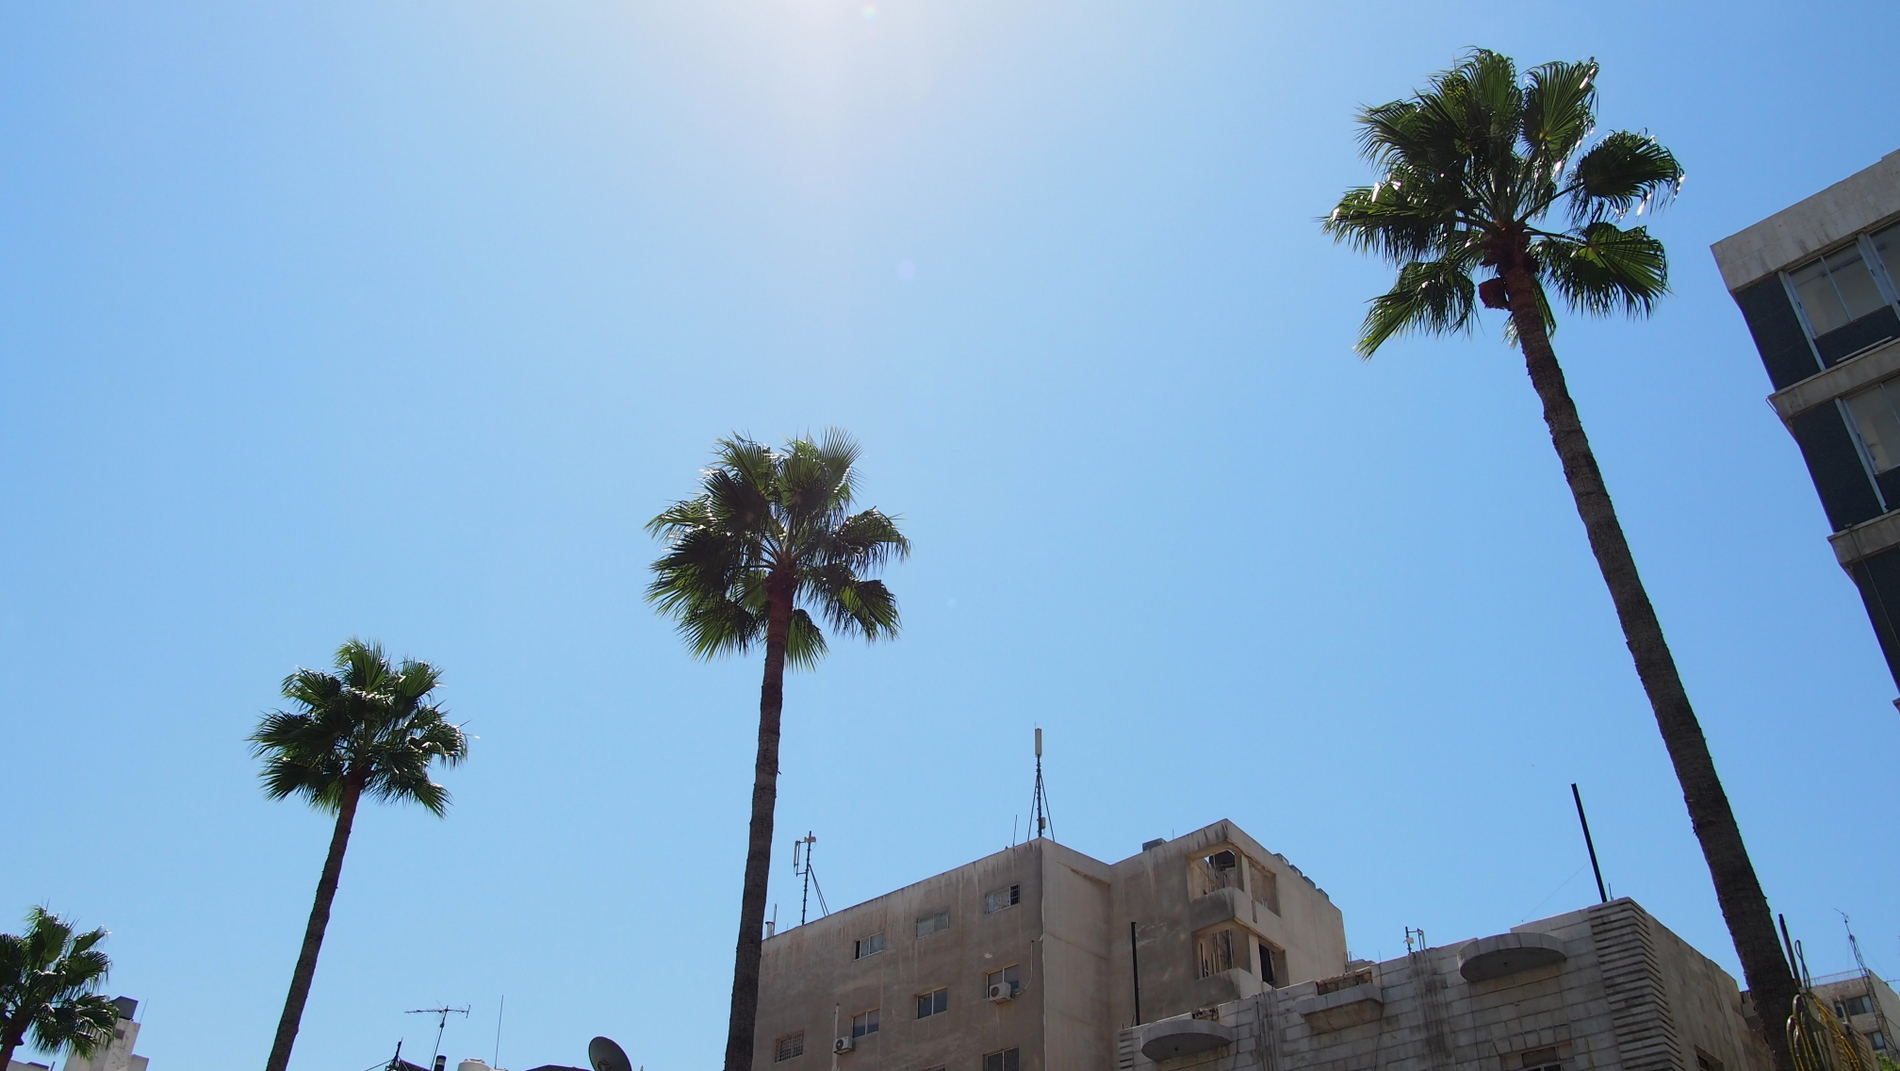 We'll tell you how to Get from Amman Queen Alia Airport to Amman